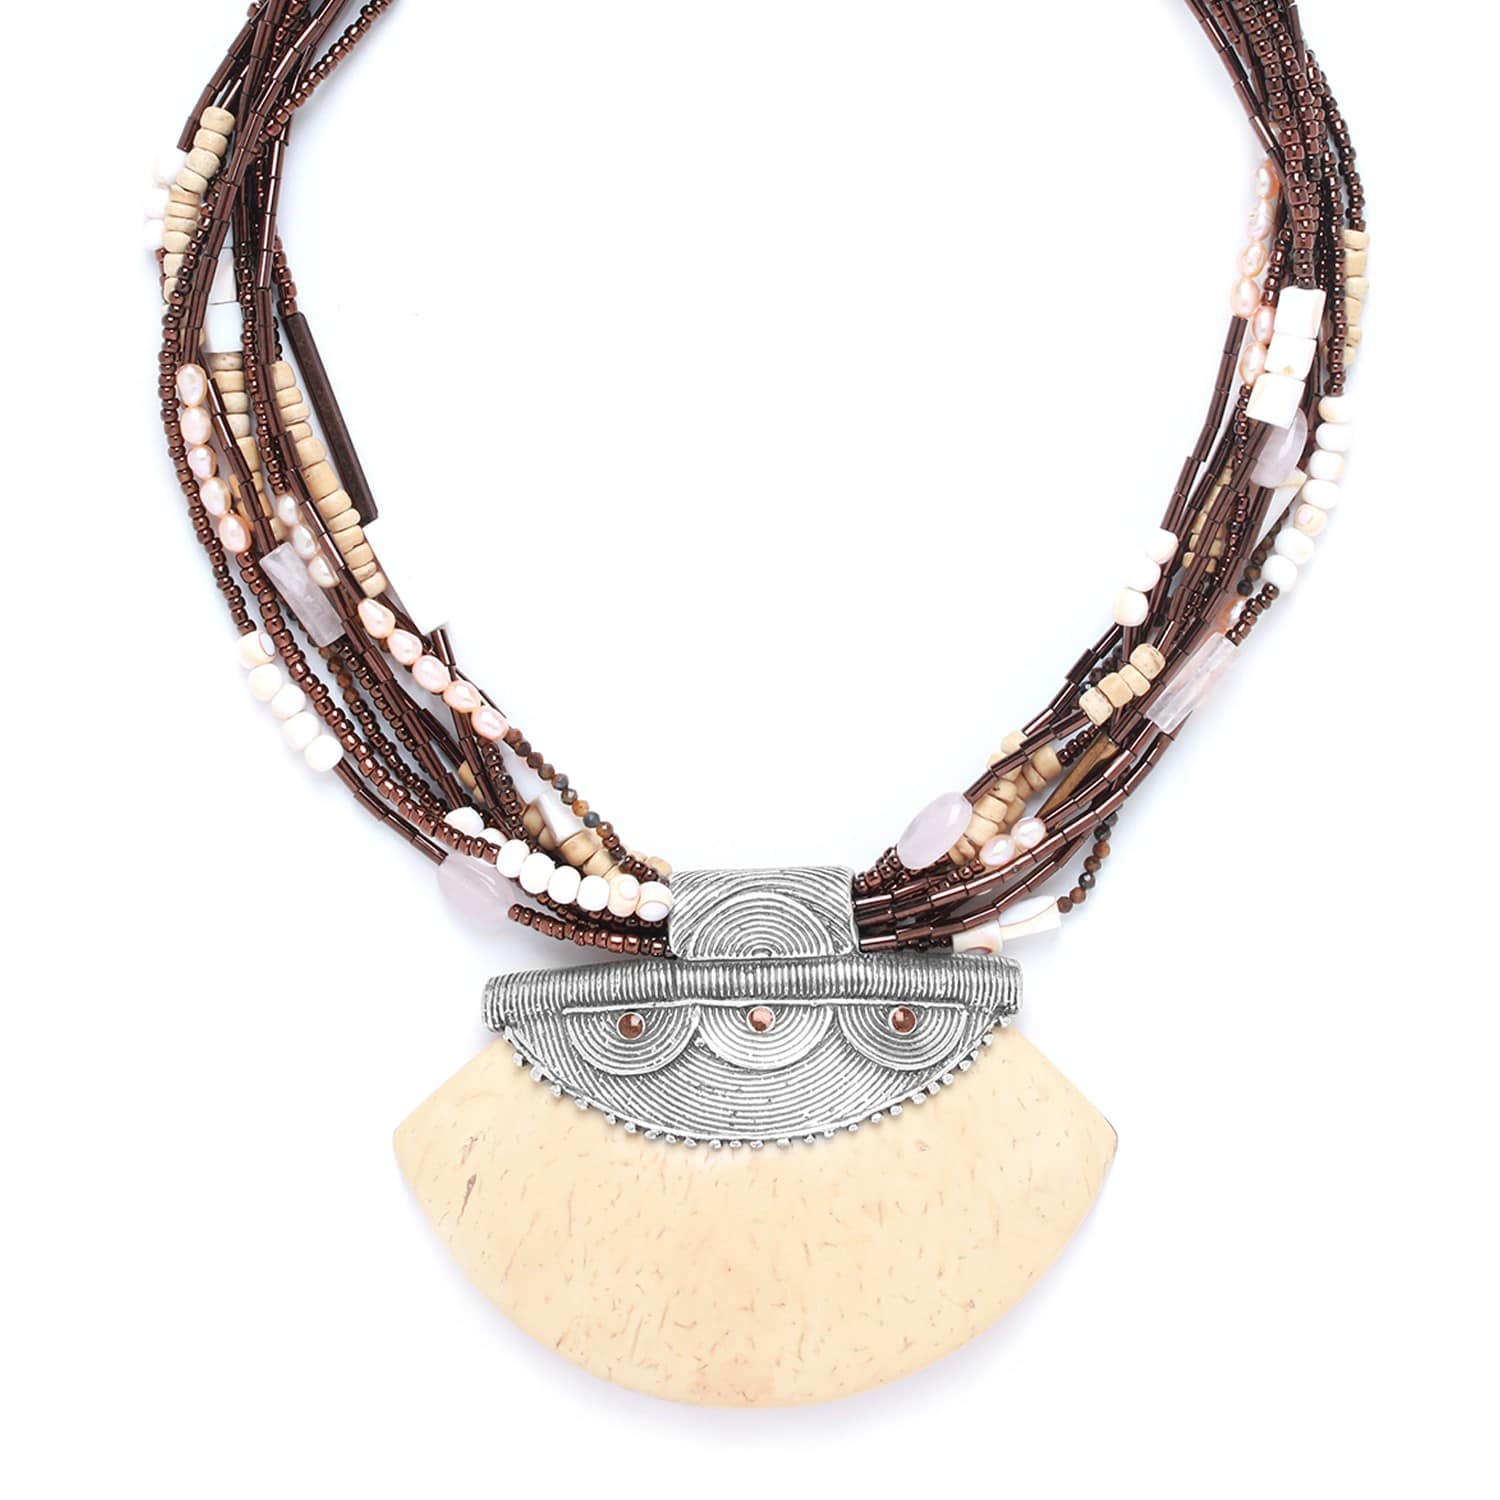 TERRE DOUCE statement necklace